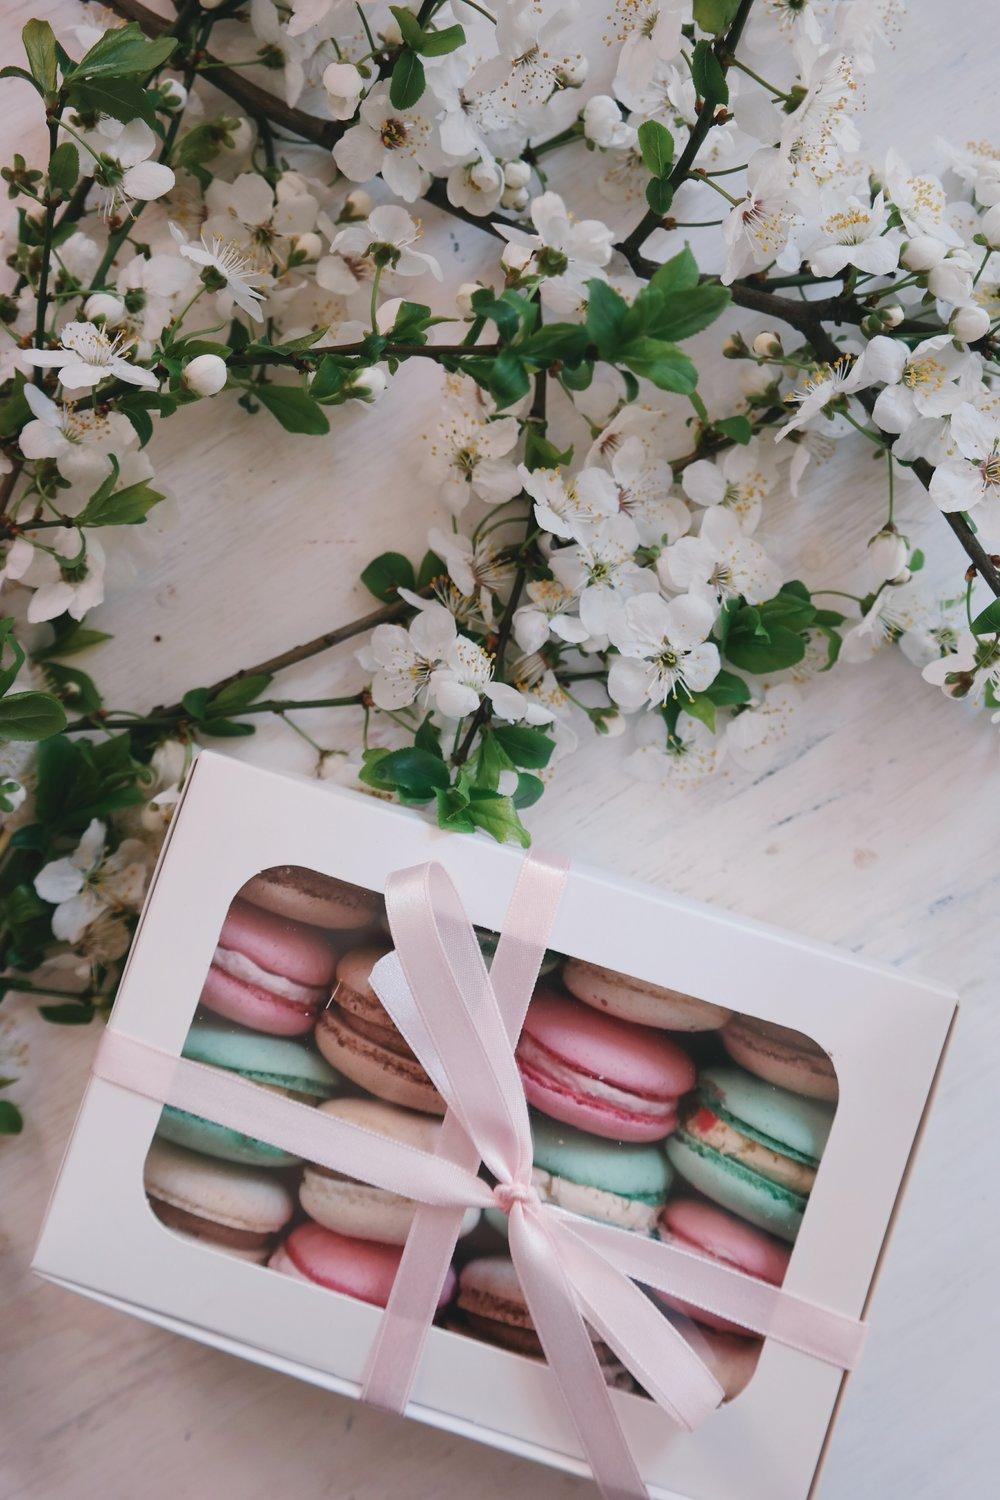 Macaron for every task completed? Yes. Ploise.